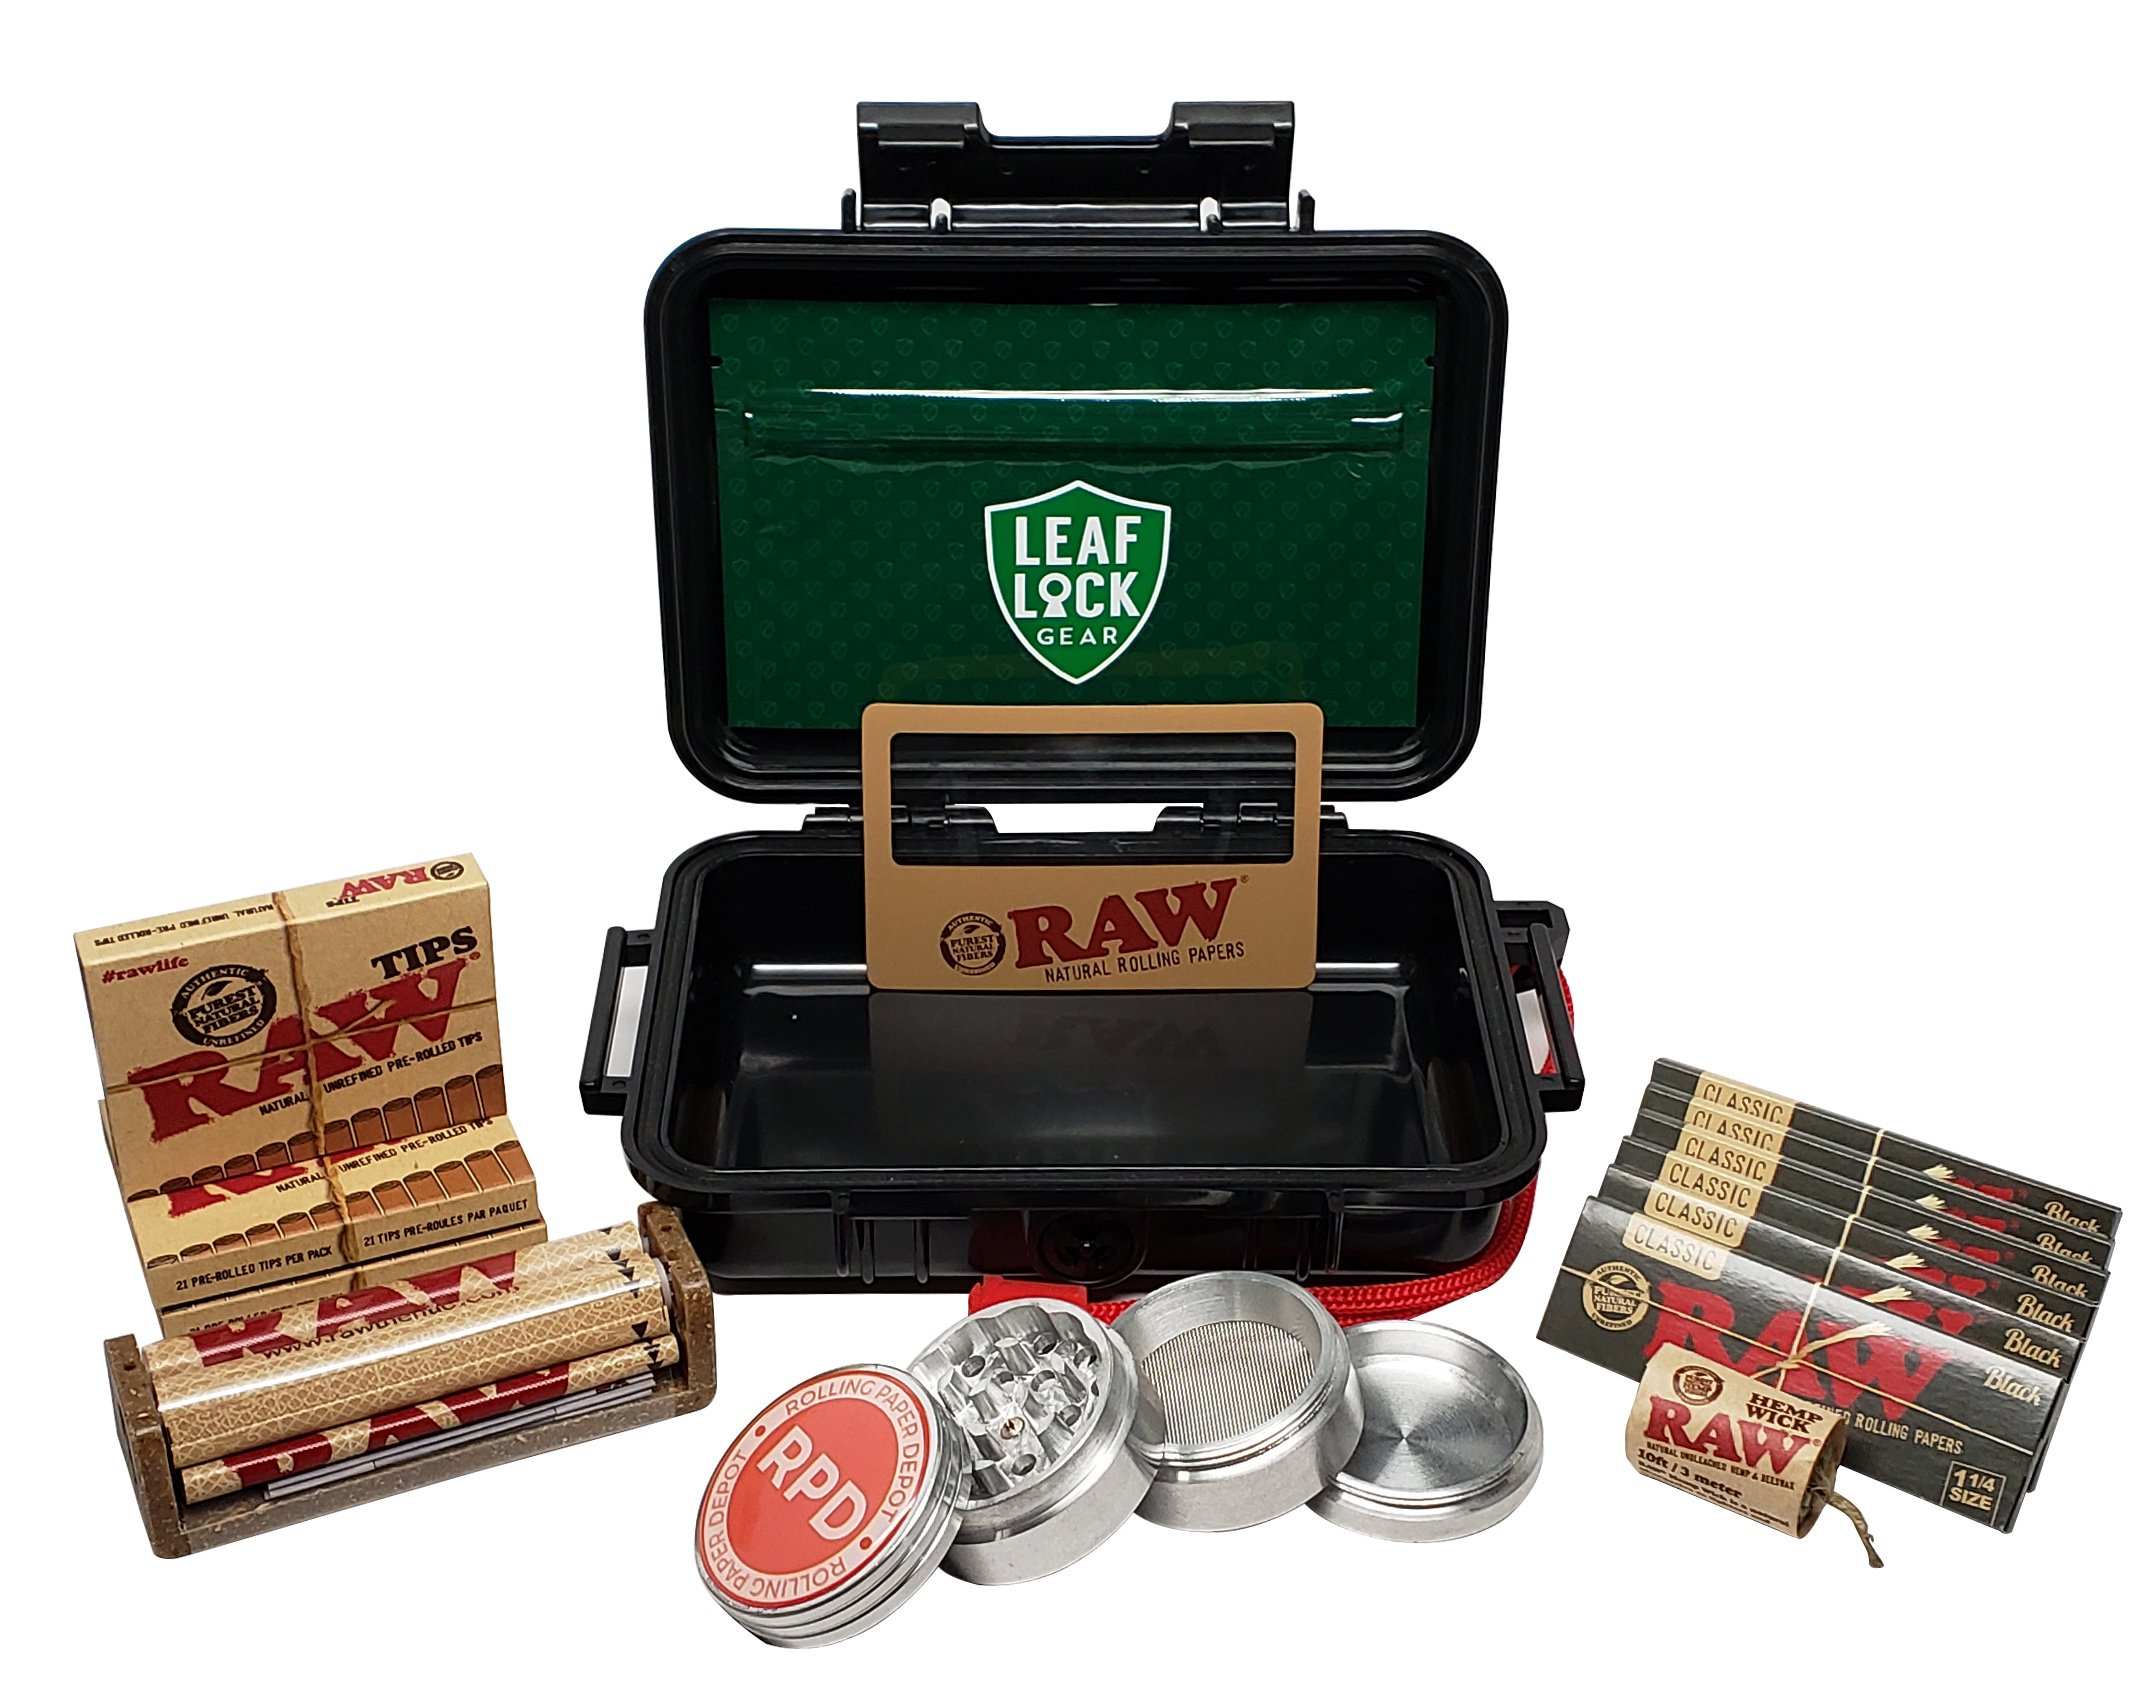 RAW Black Rolling Papers 1 1/4 (6 Packs), Pre Rolled Tips (3 Packs), Roller, Hemp Wick, Magnifier Card with RPD Grinder, Leaf Lock Gear Airtight Carrying Case and Smell Proof Pouch - Bundle - 15 Items by RAW, Leaf Lock Gear